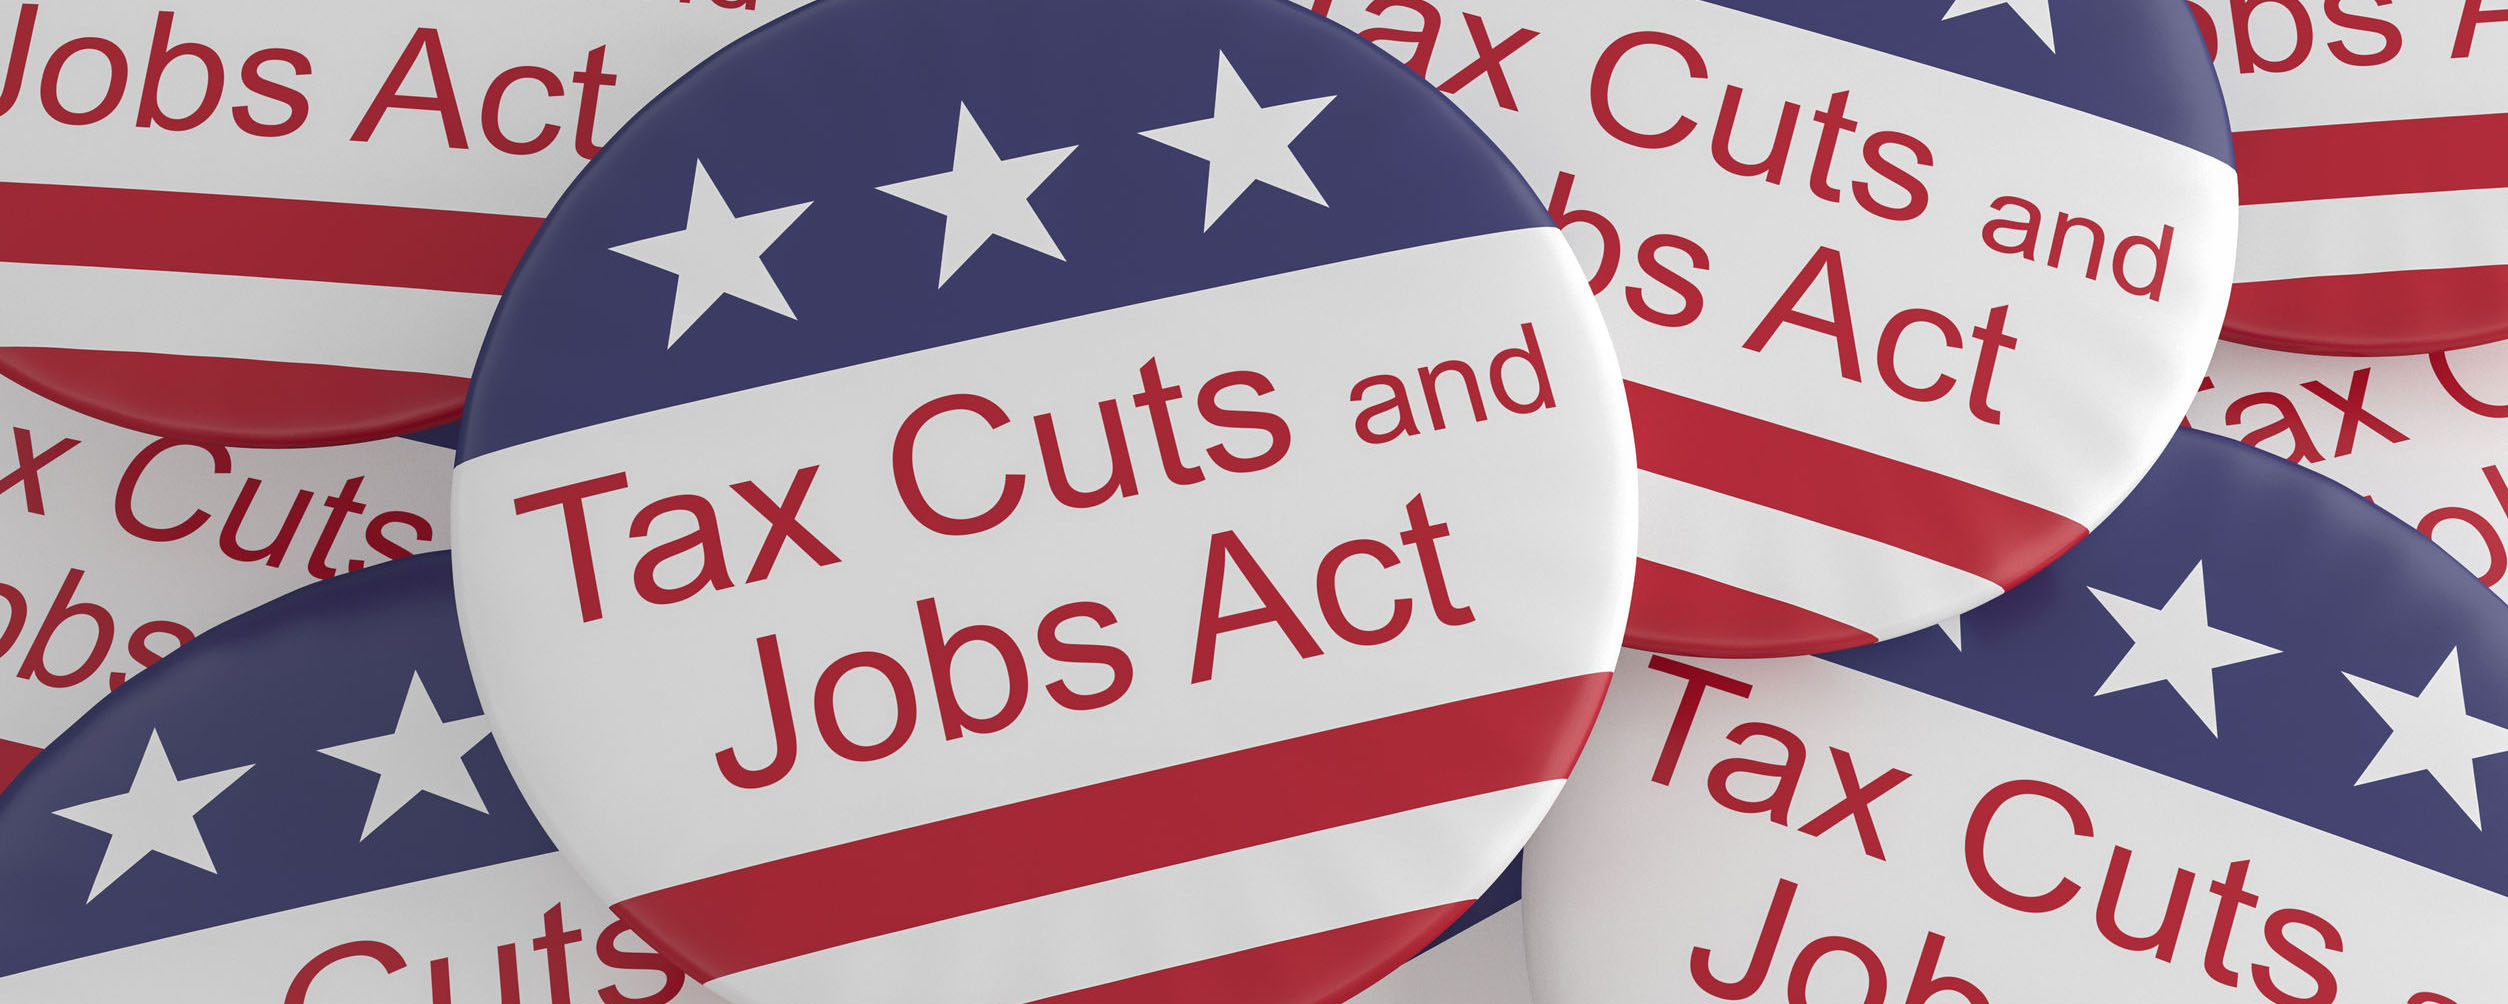 The Tax Cuts and Jobs Act Downsides